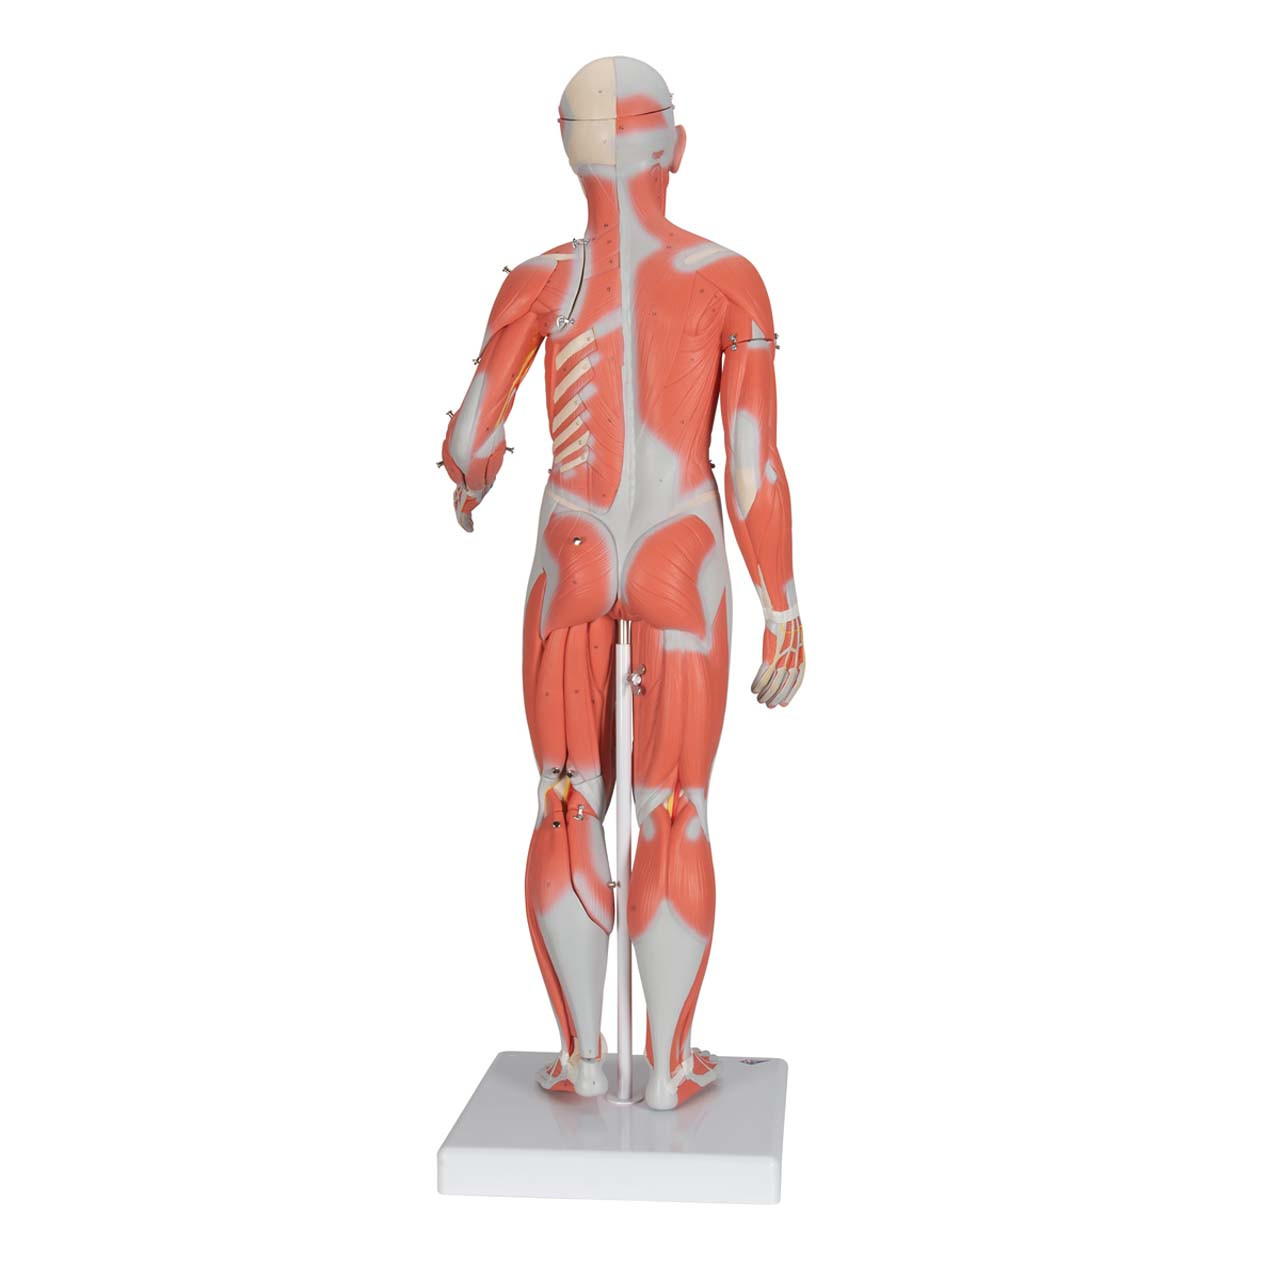 1000211 - 1/2 Life-Size Complete Female Muscular Figure, 21 part Without Internal Organs